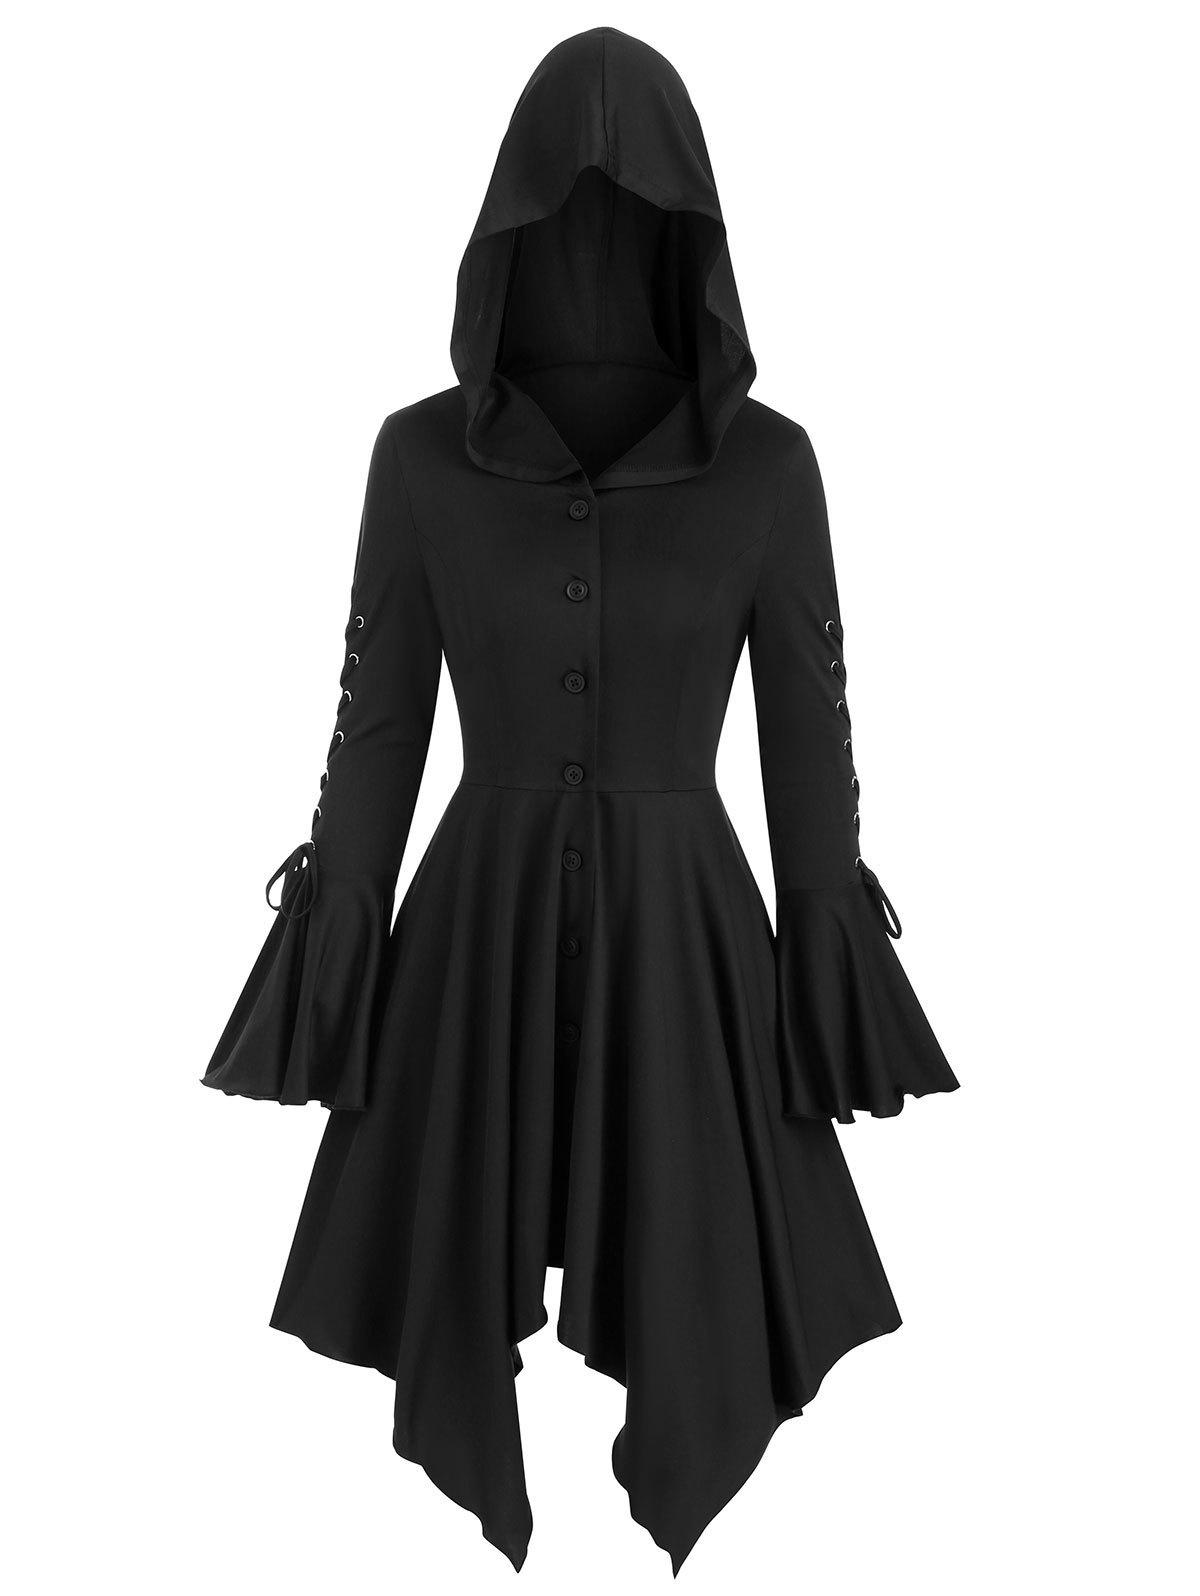 Hooded Lace-up Poet Sleeve Button Up Hanky Hem Skirted Gothic Coat - BLACK XL